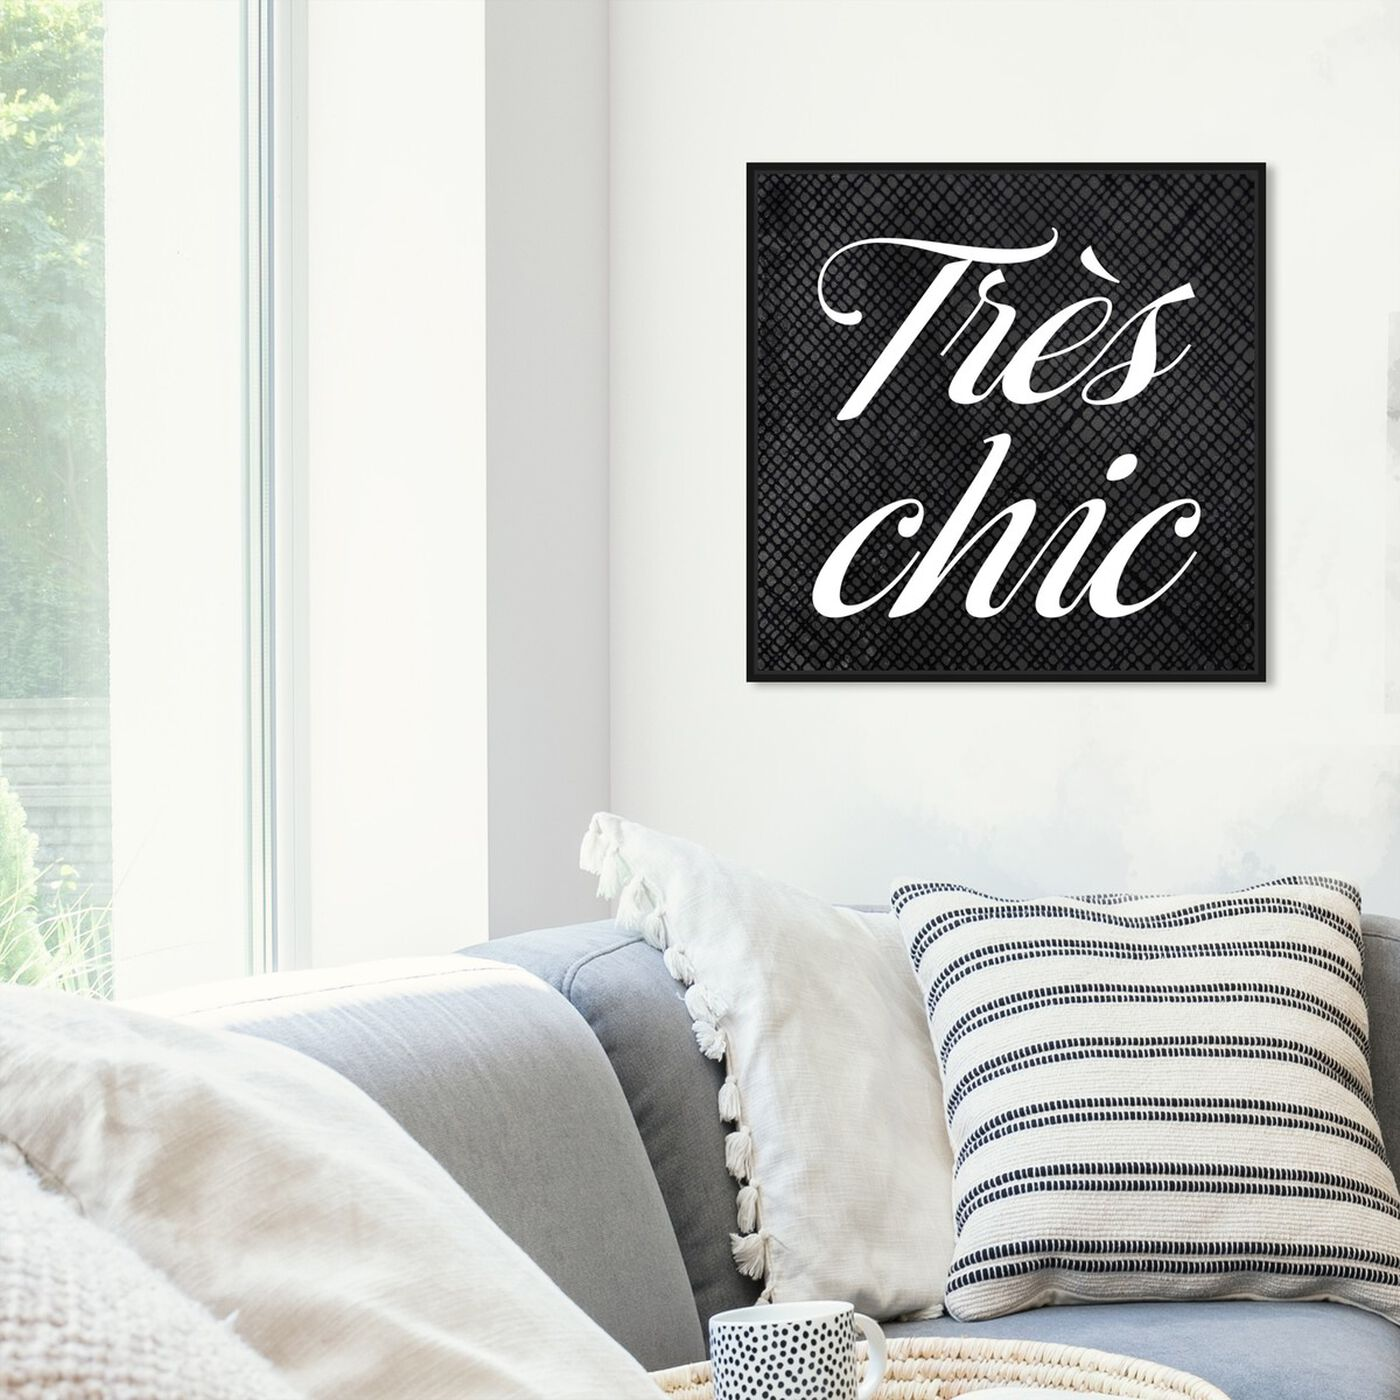 Hanging view of Tres Chic featuring typography and quotes and beauty quotes and sayings art.